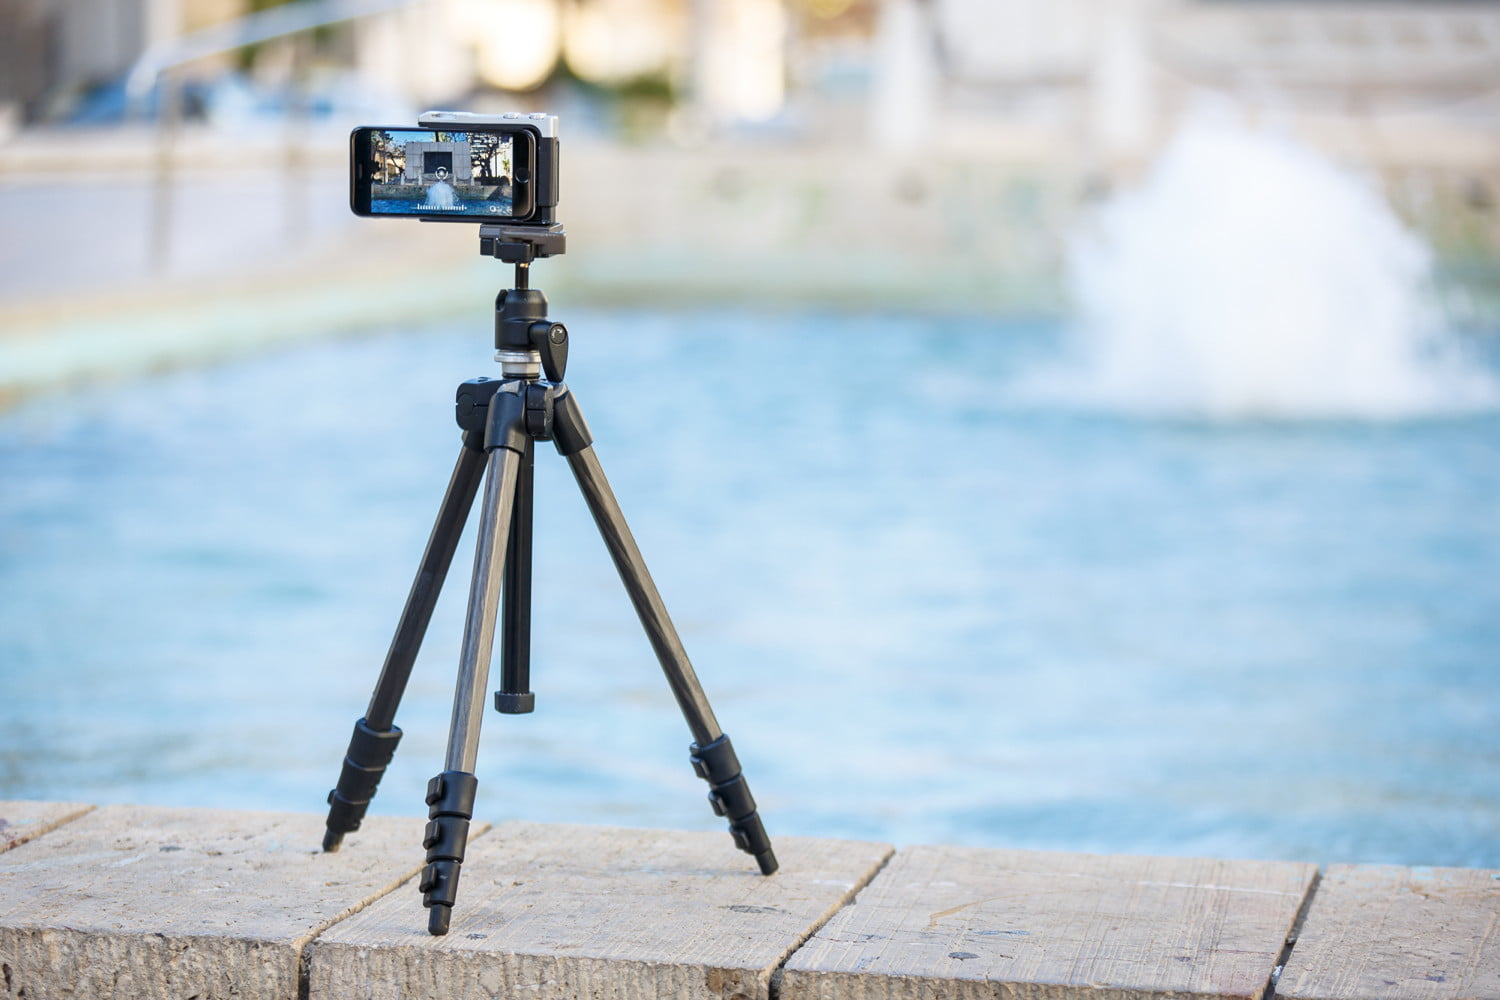 pictar iphone case provides dslr like shooting experience miggo 15